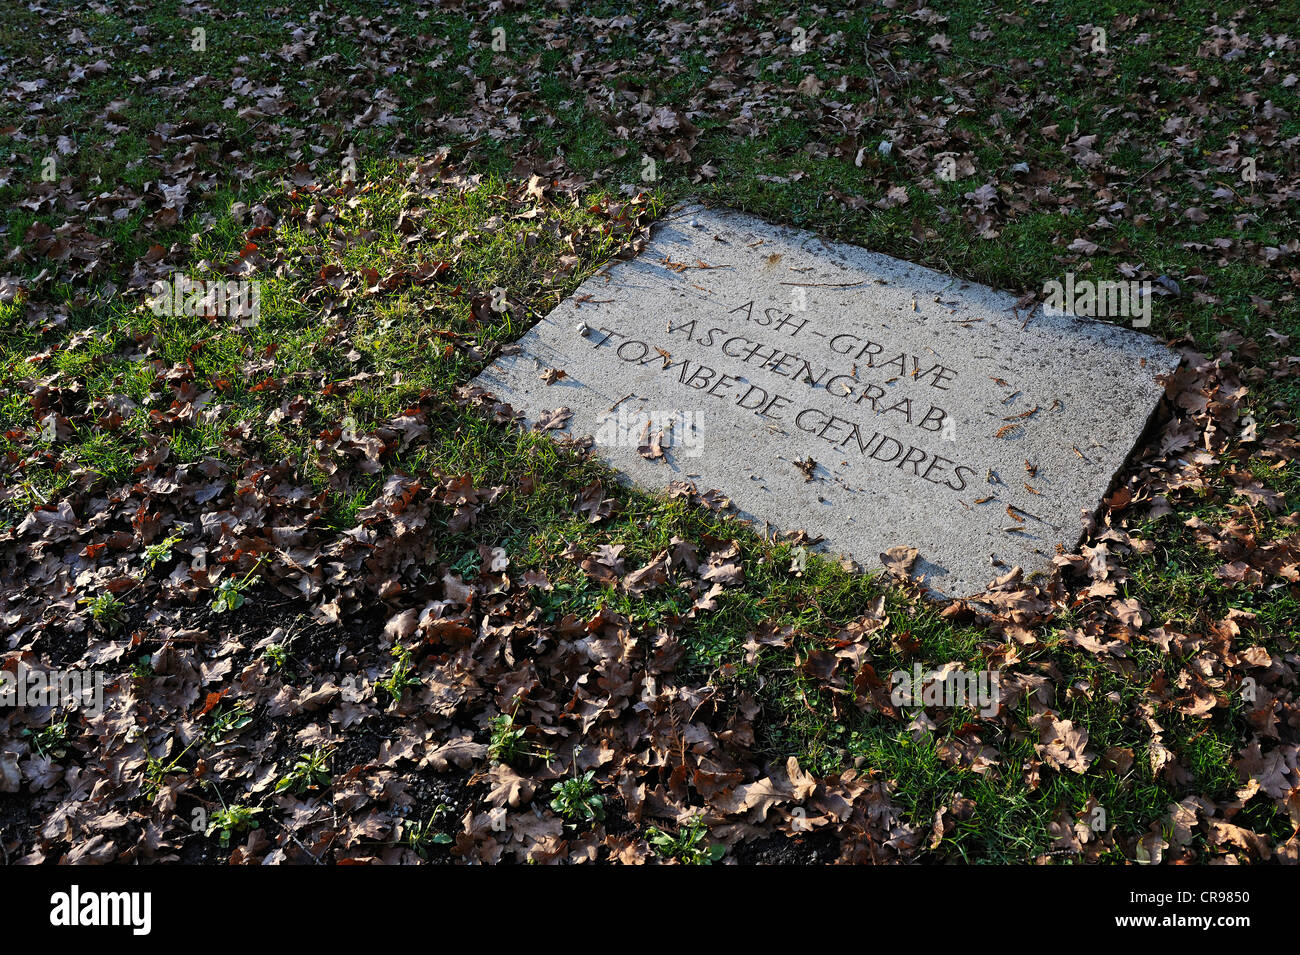 Memorial stone at the cremated remains of thousands of unknown prisoners, concentration camp, Dachau near Munich, - Stock Image